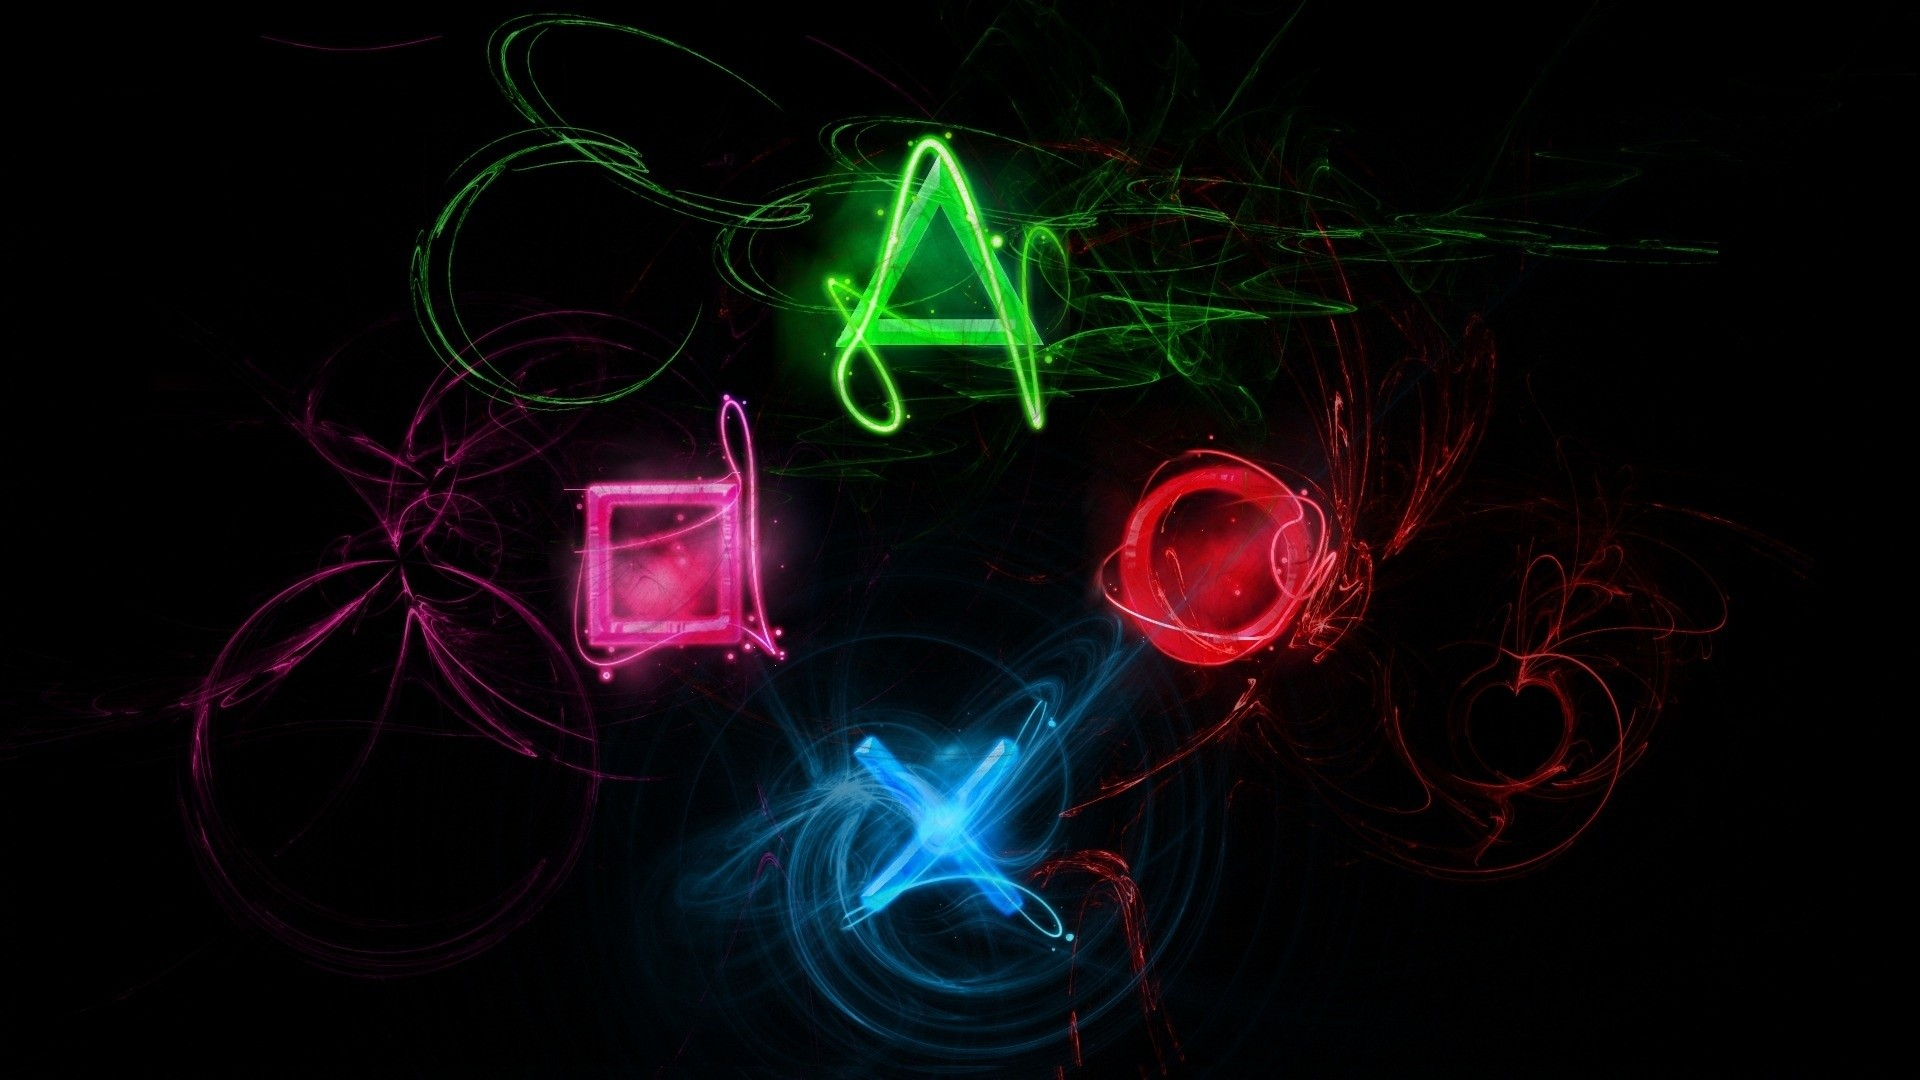 Ps3 Backgrounds